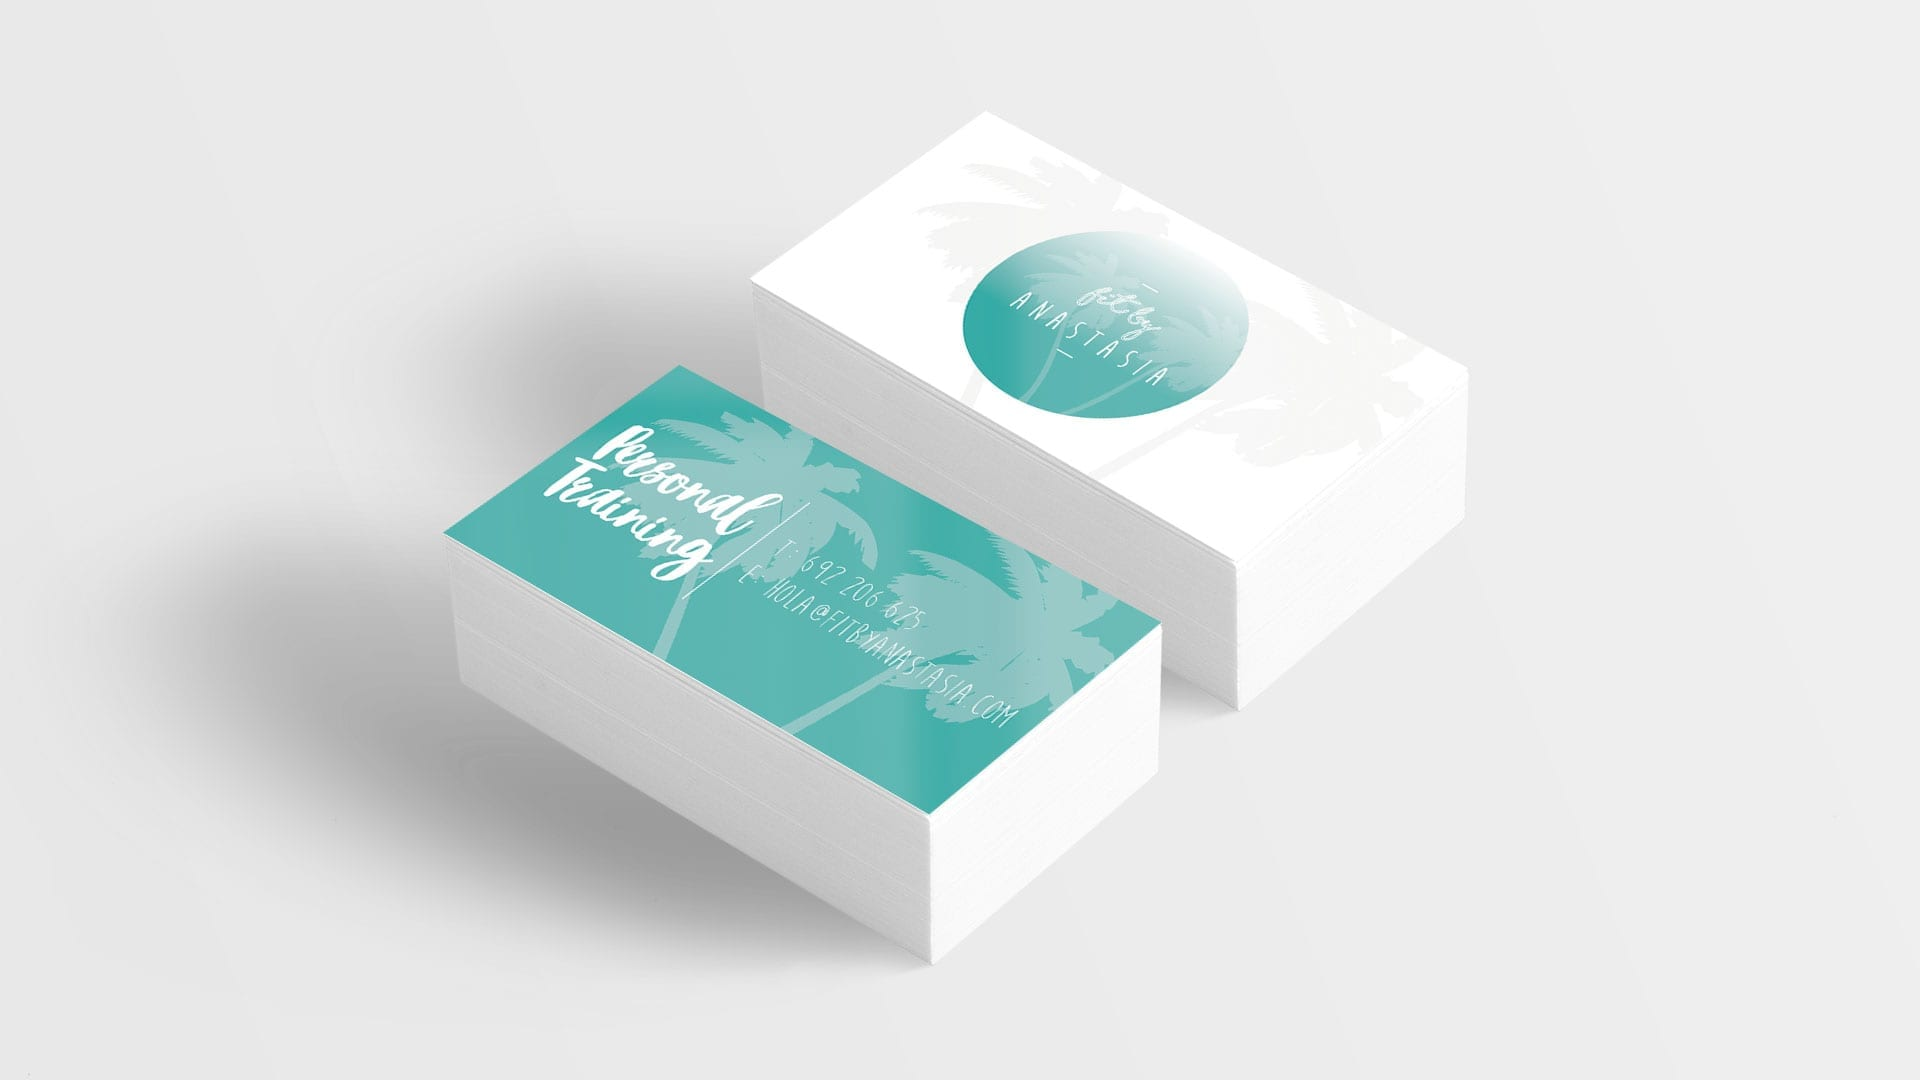 logo design on business cards mockup 3